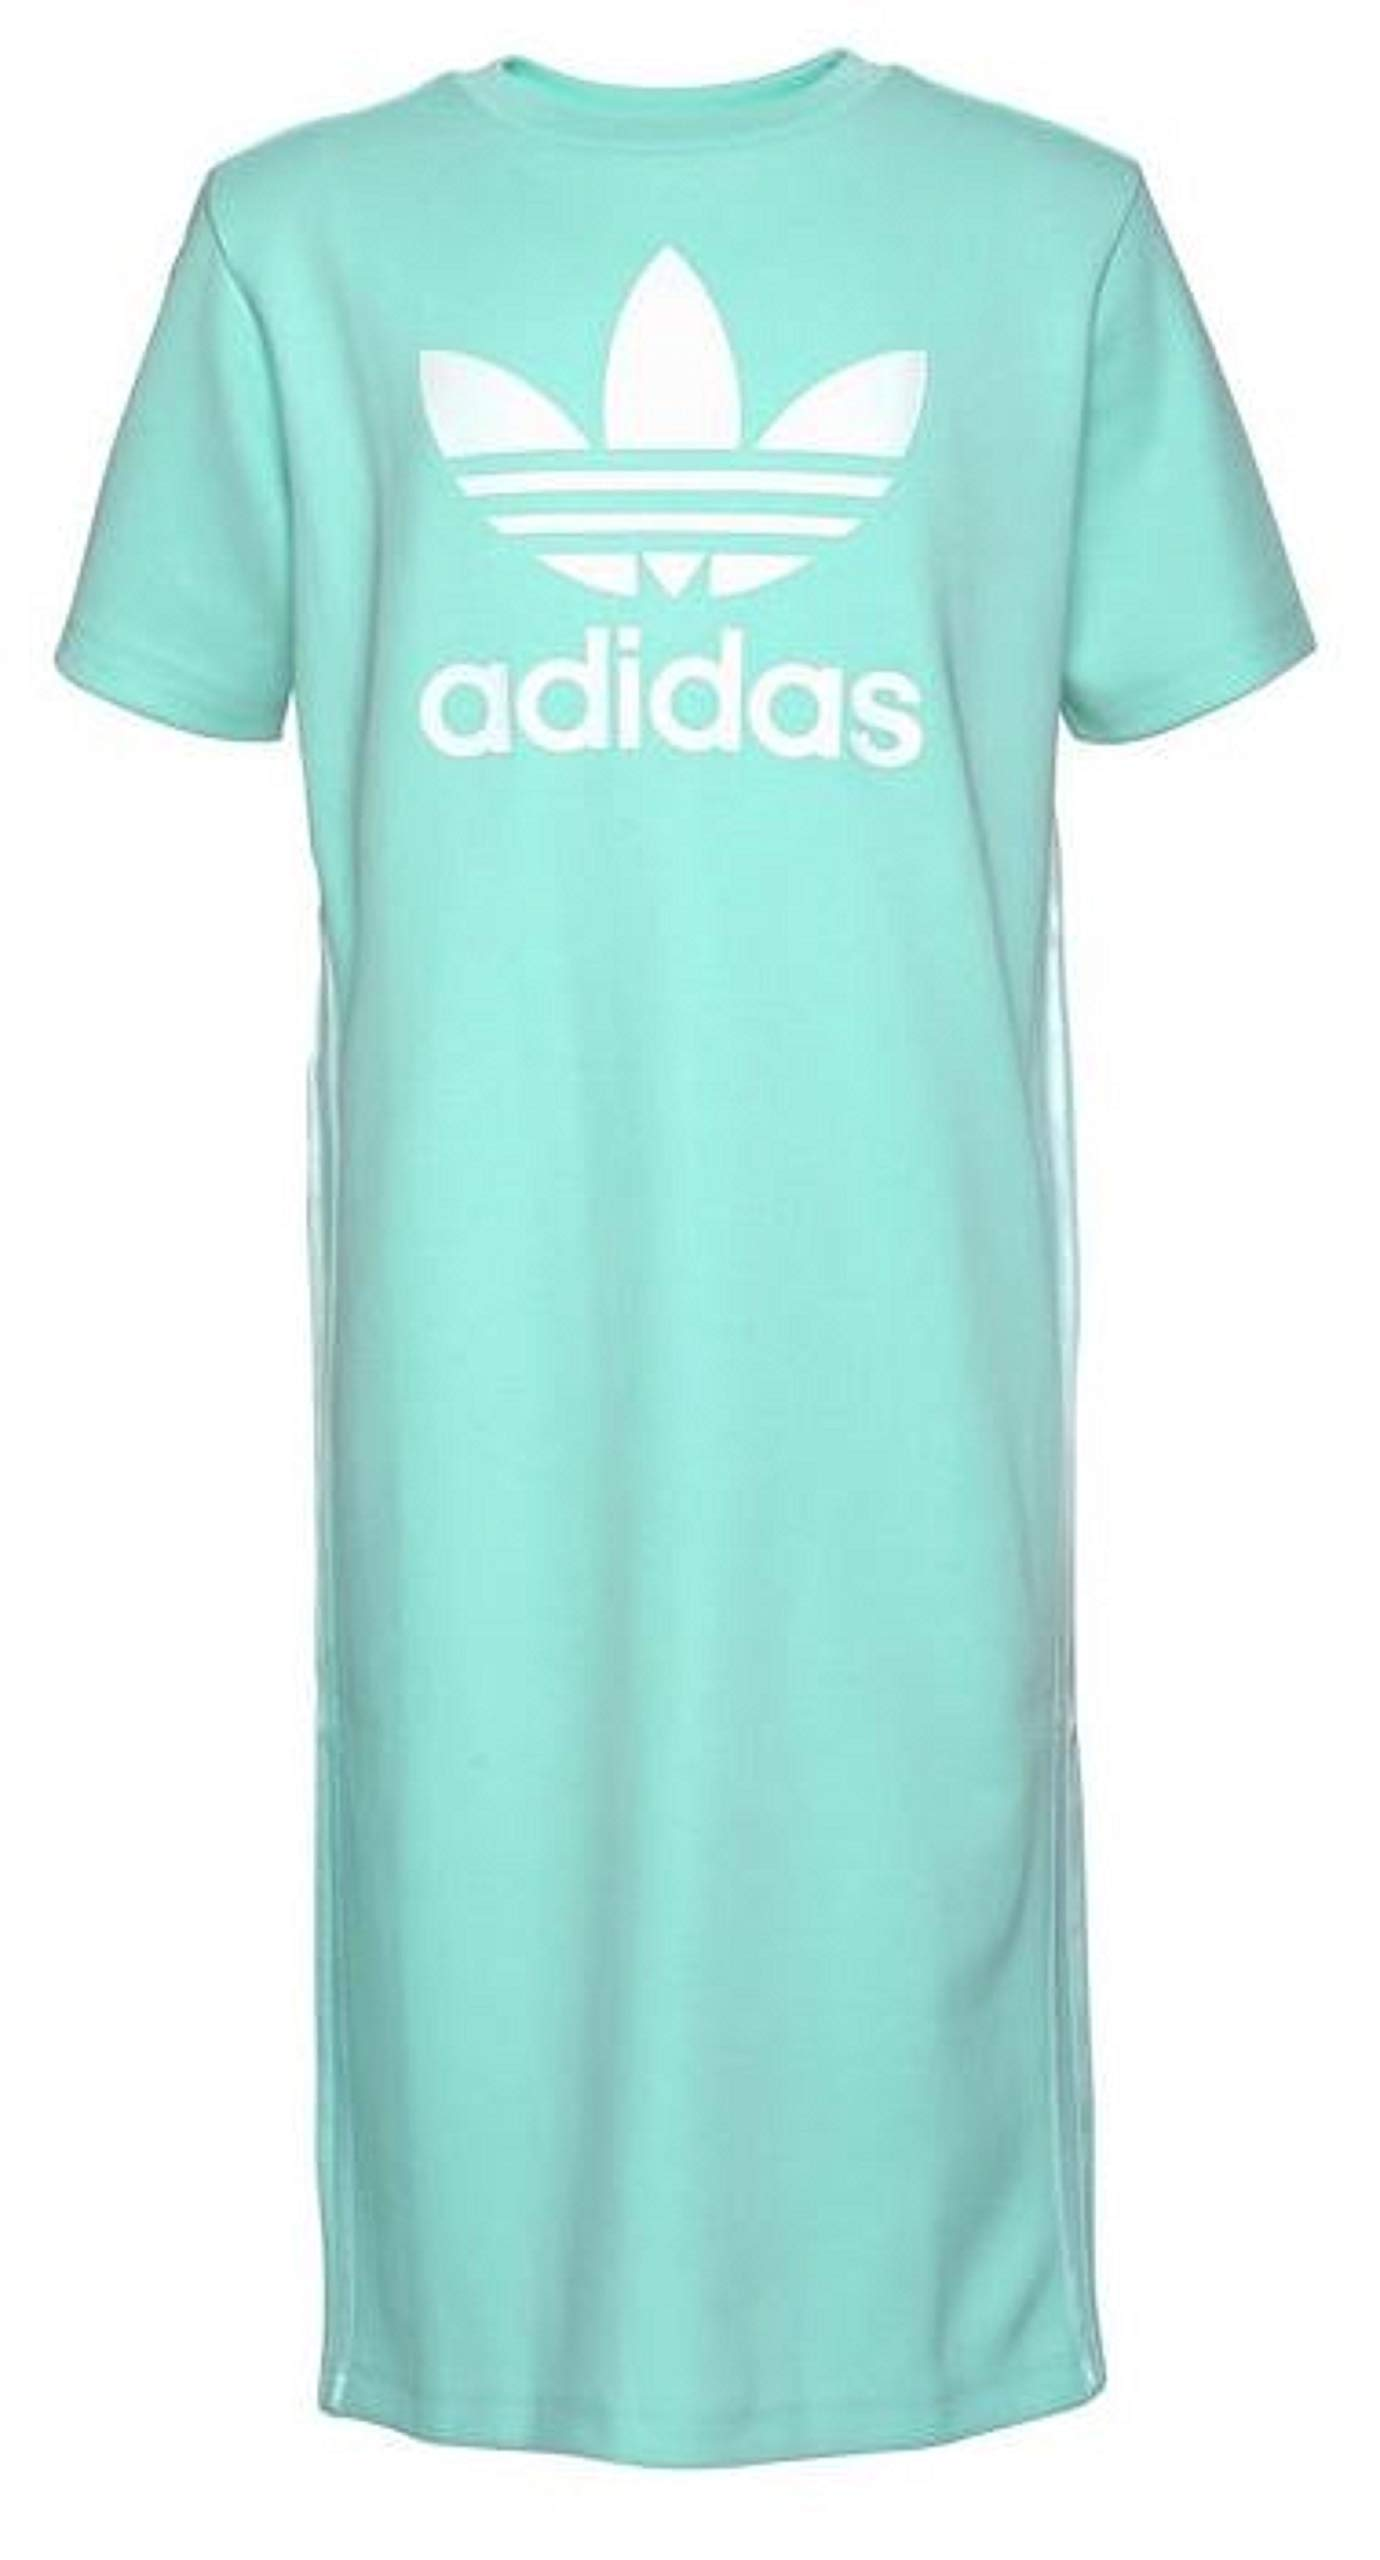 adidas Originals Girls Tank Sleeveless Zoo Dress (Medium, Clear Mint/White) by adidas Originals